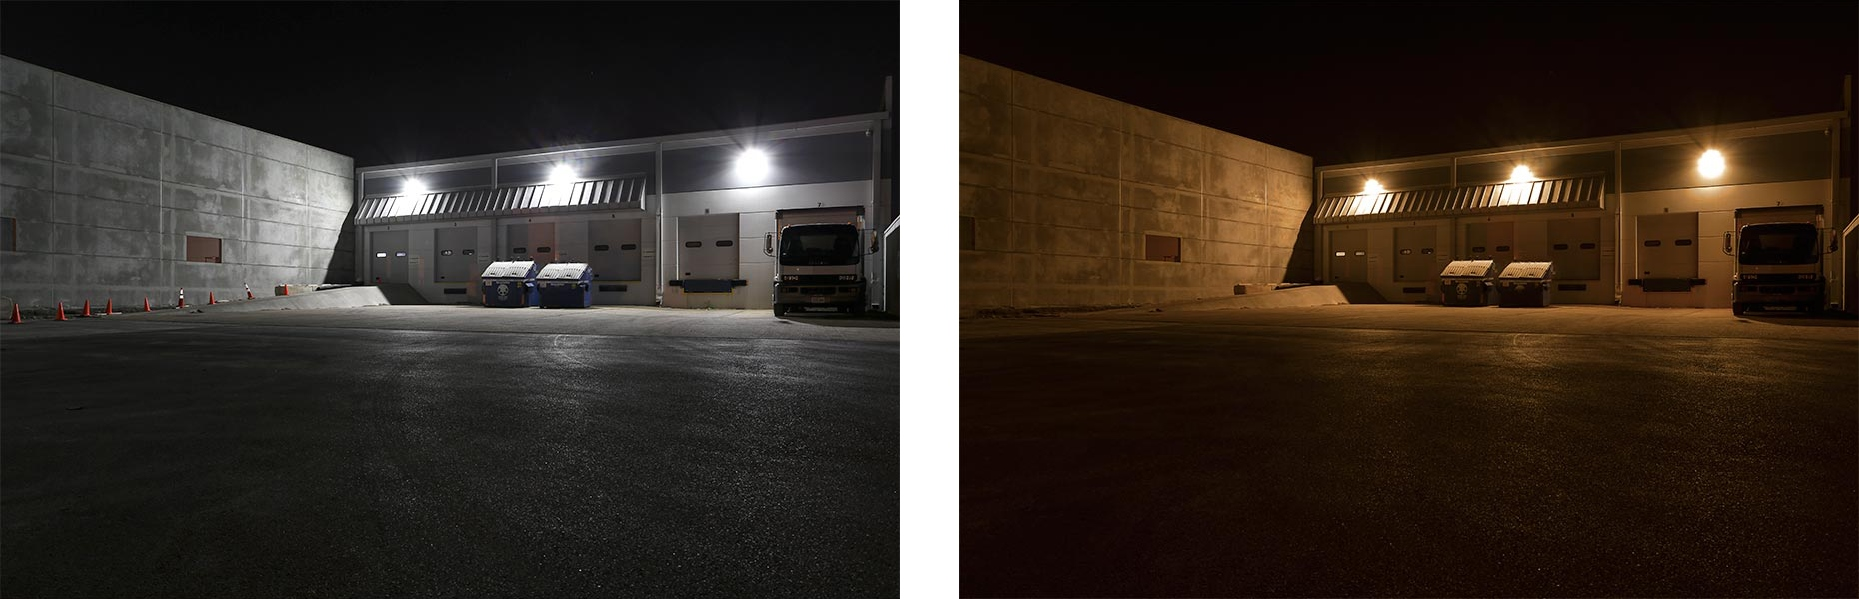 Making The Switch To Led Parking Lot Lights Super Bright